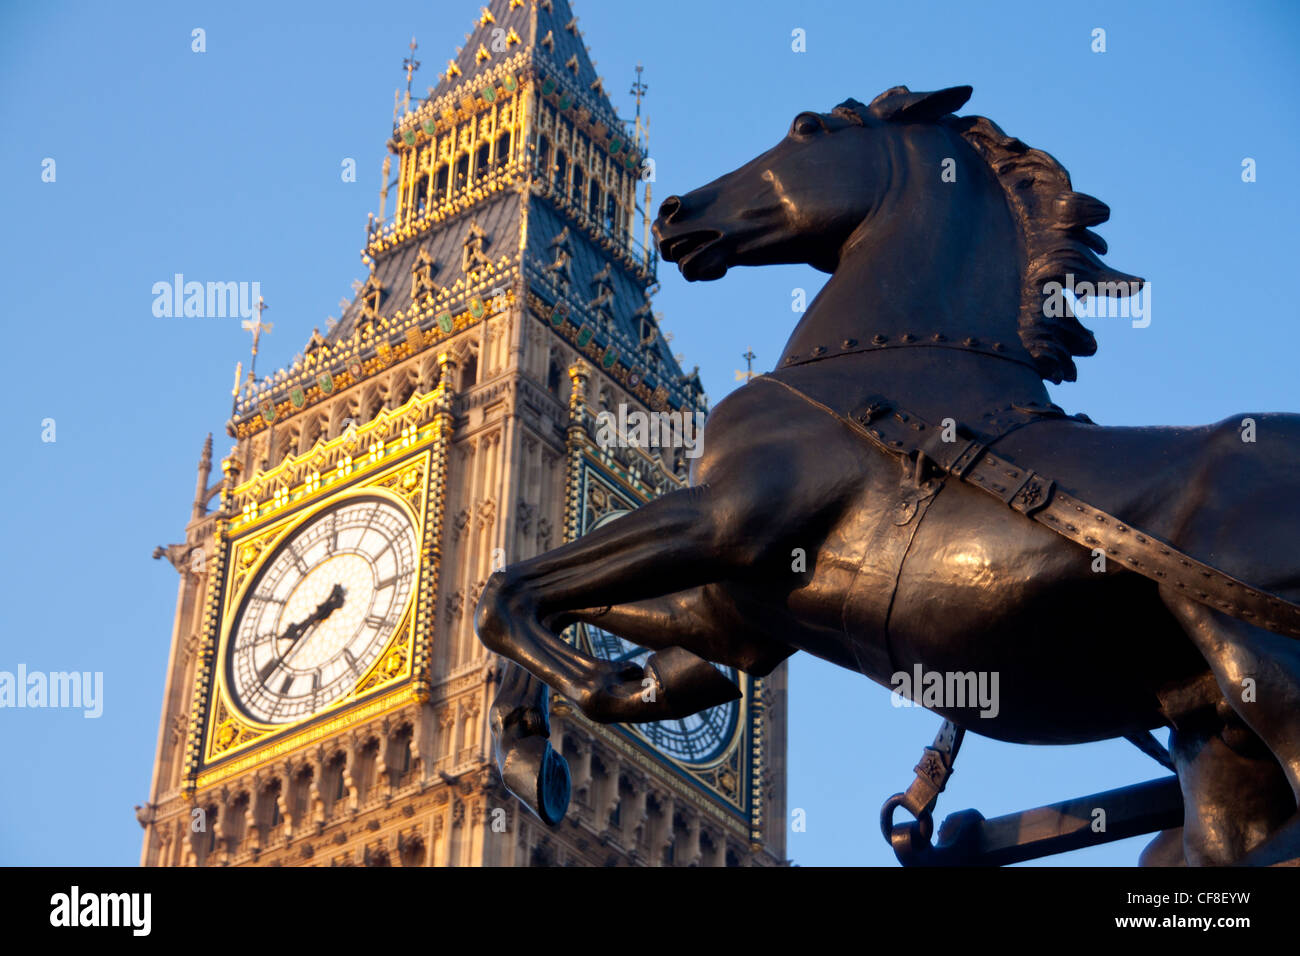 Horse And Chariot Stock Photos Amp Horse And Chariot Stock